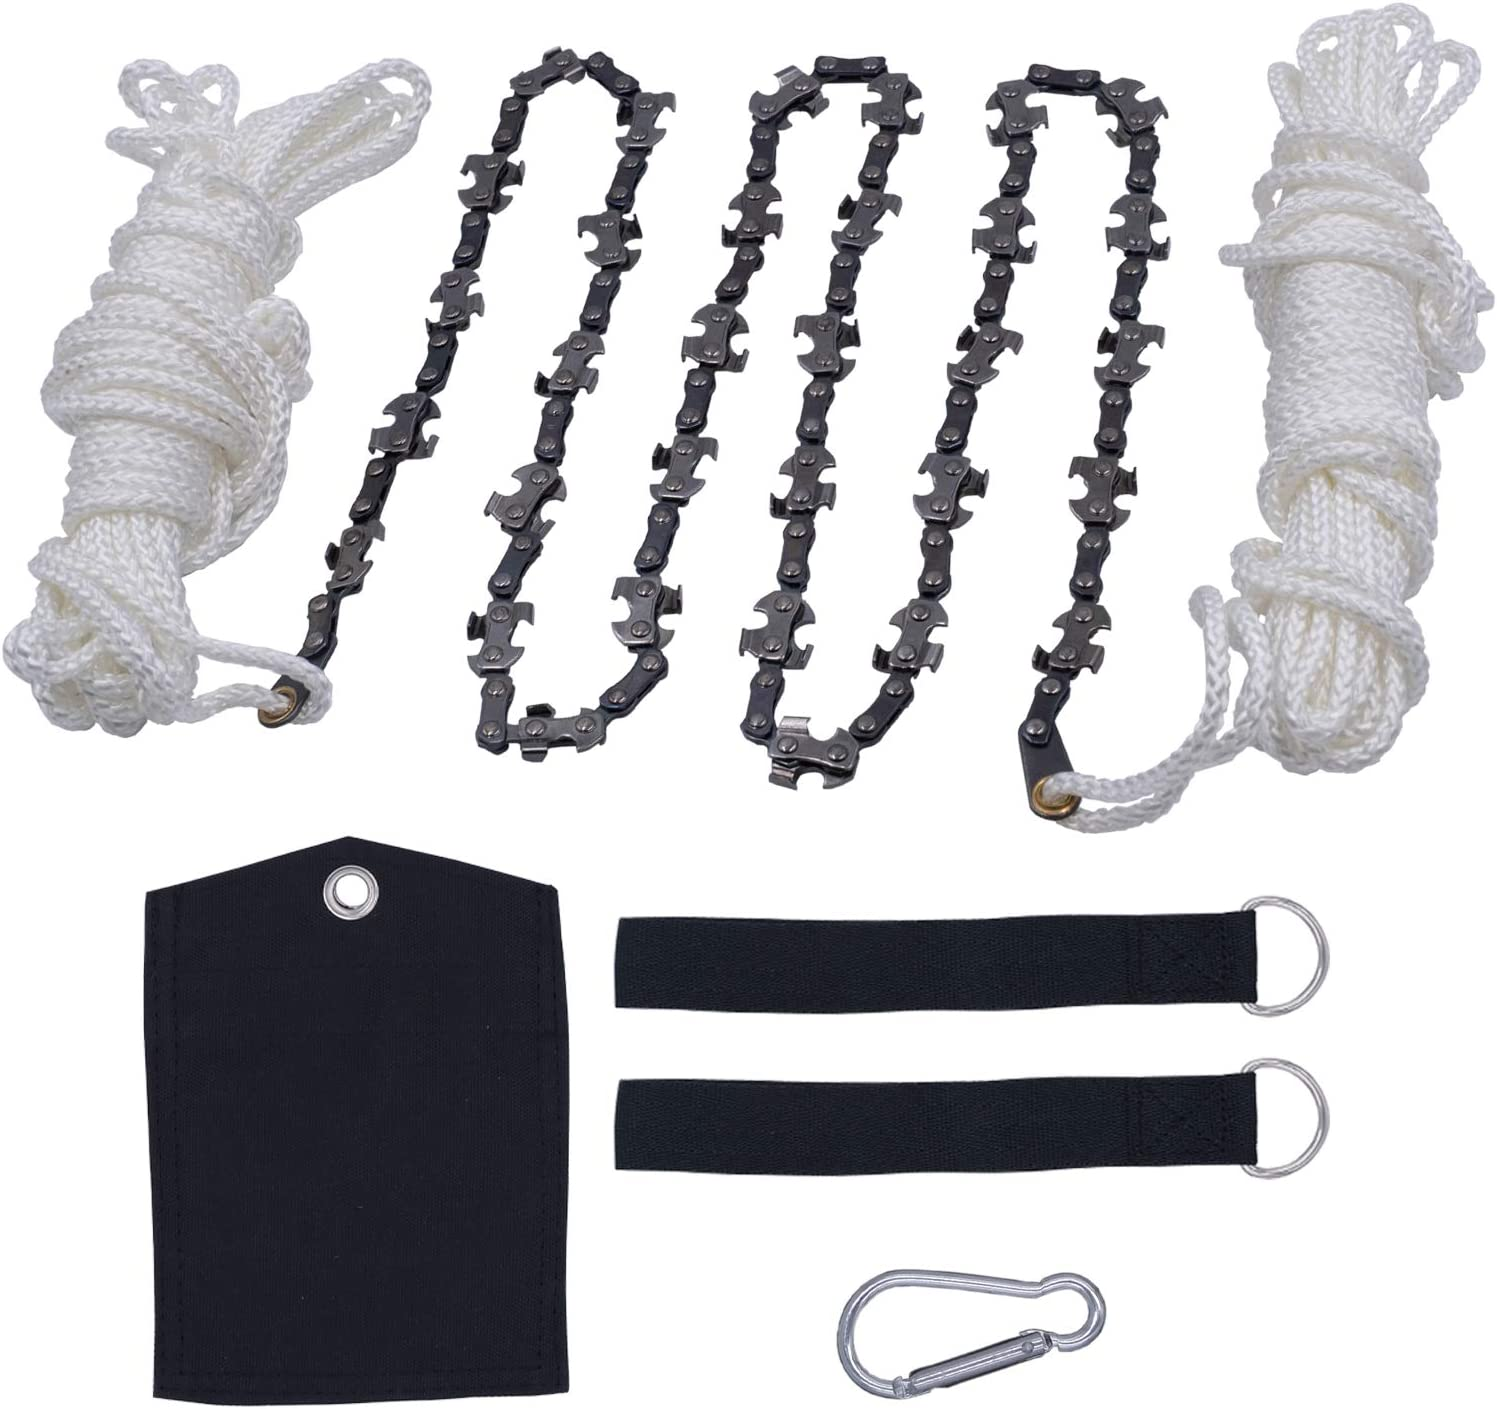 Gifts BushWalk 48 Inch High Reach Tree Limb 6 with Rope Chain Hand Saw Large special price